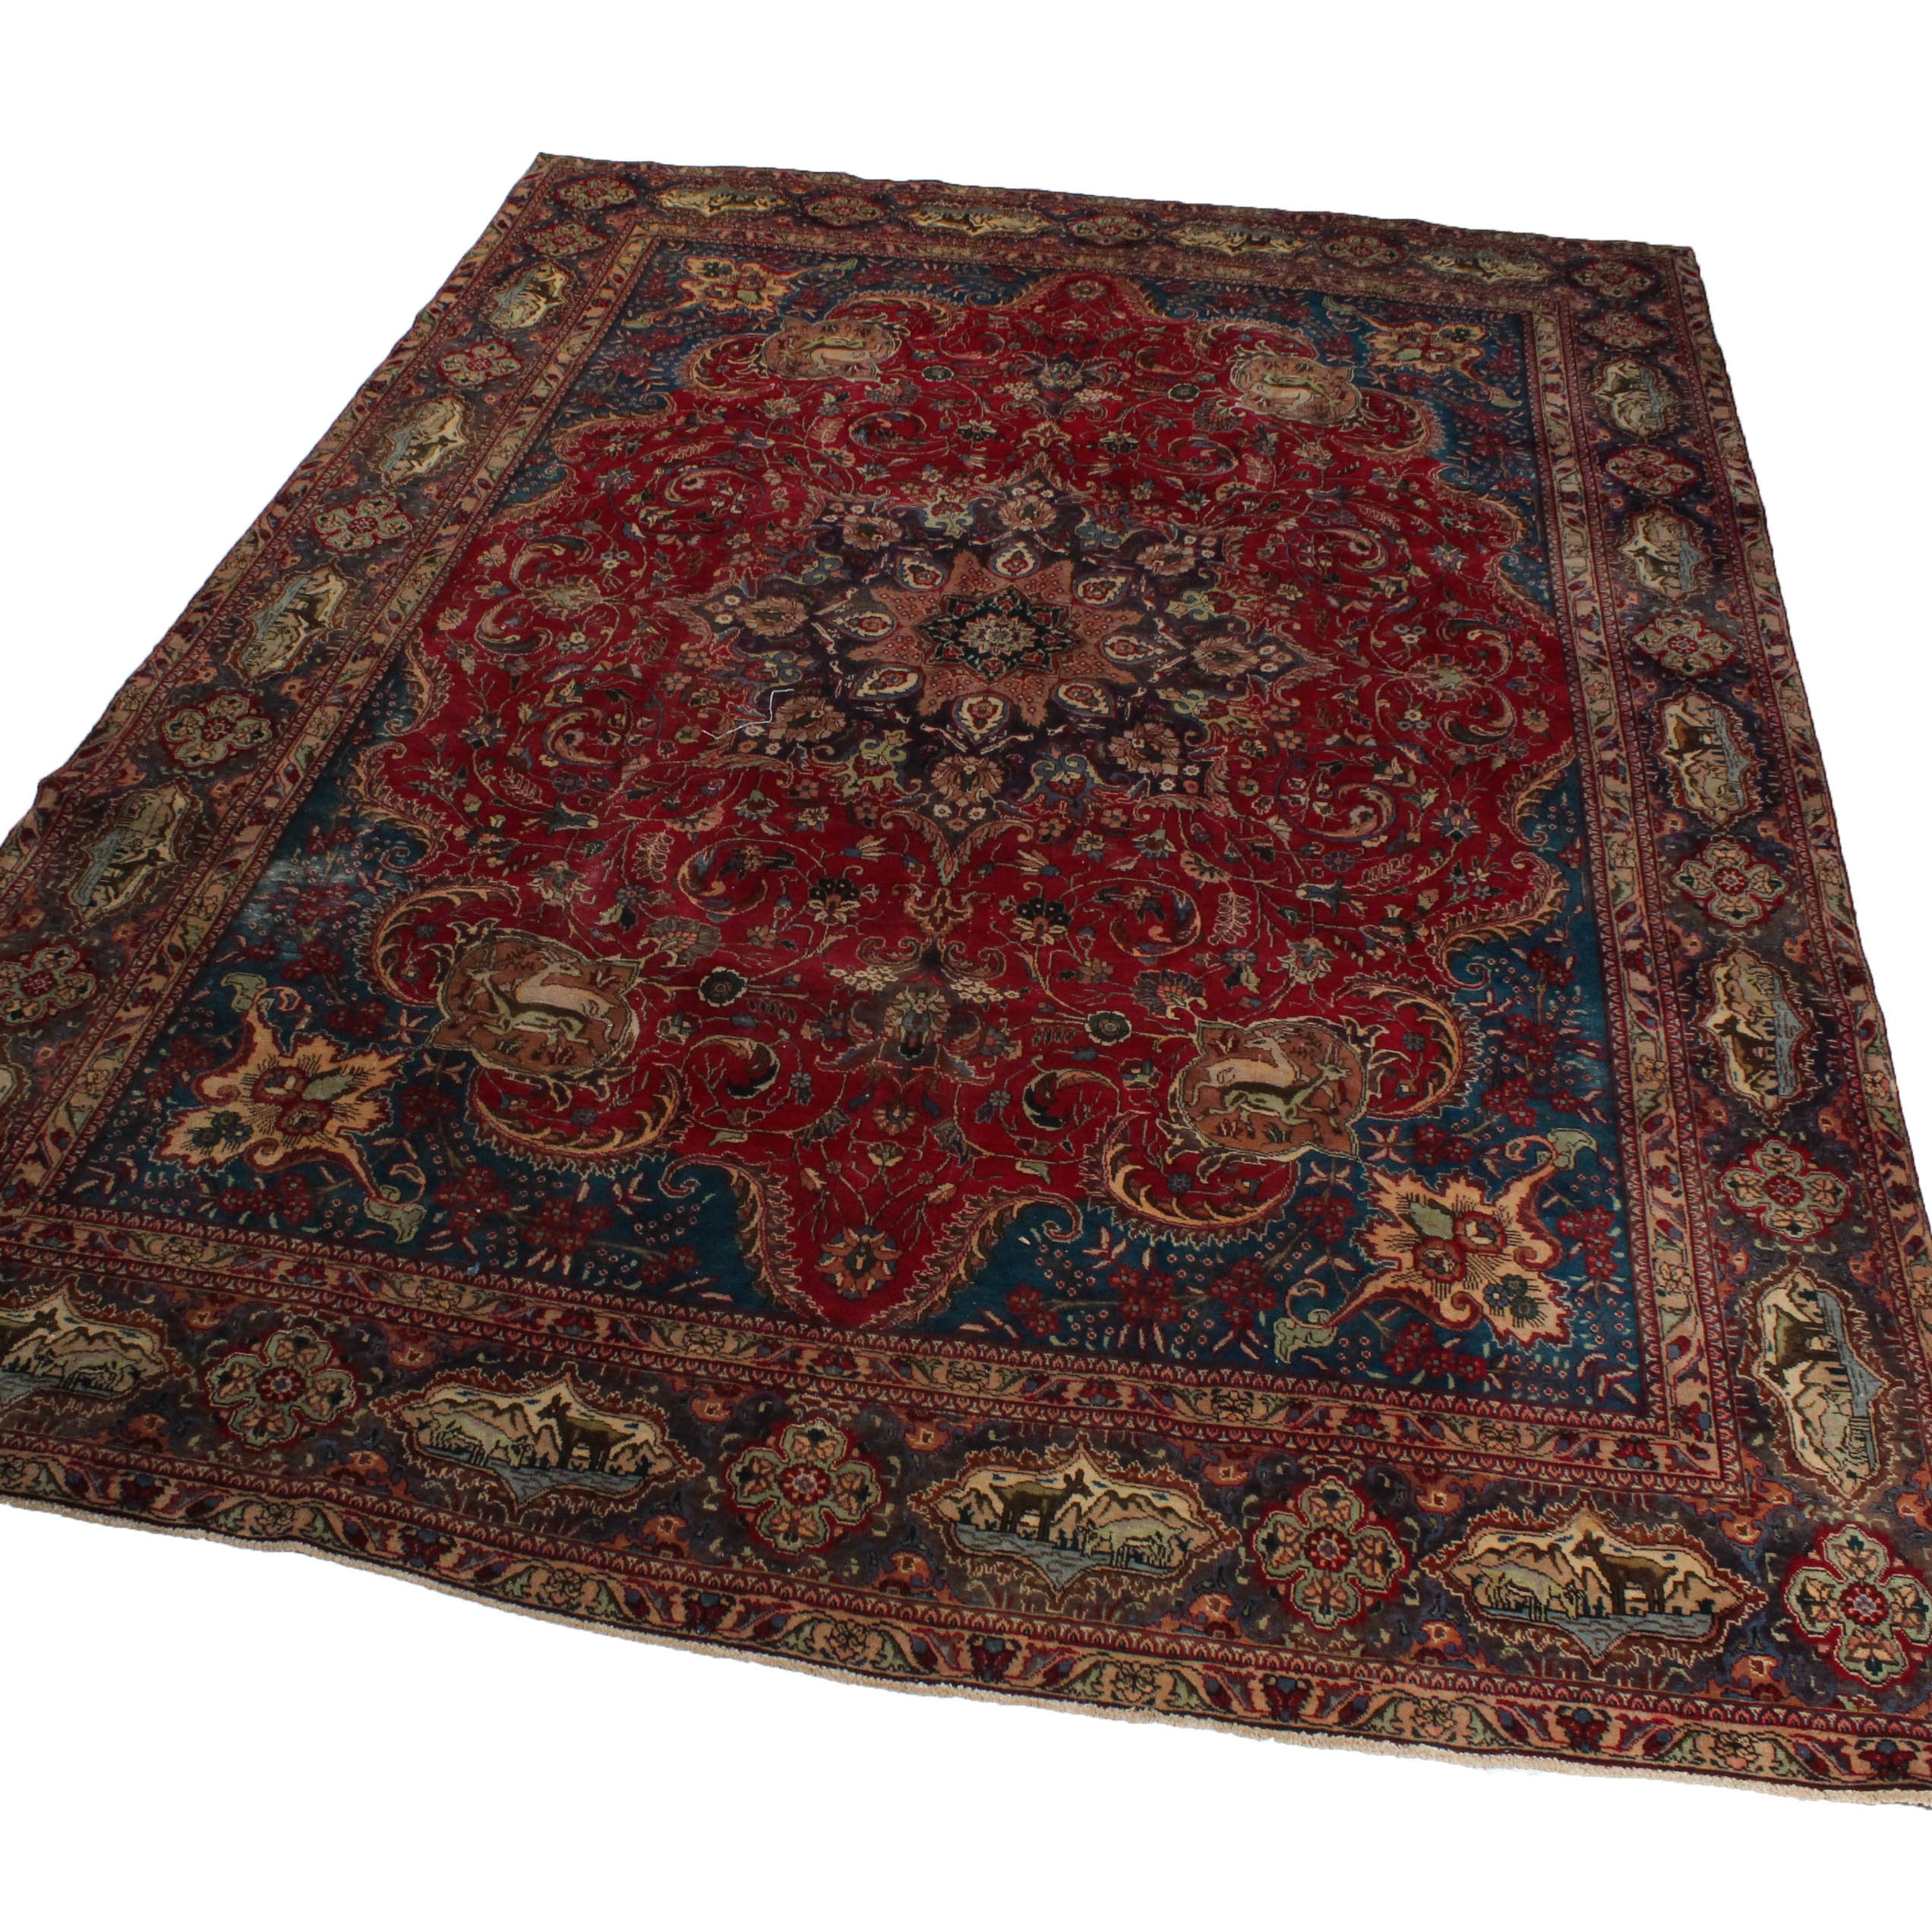 Vintage Hand-Knotted Persian Archaeological Kashmir Room Sized Rug